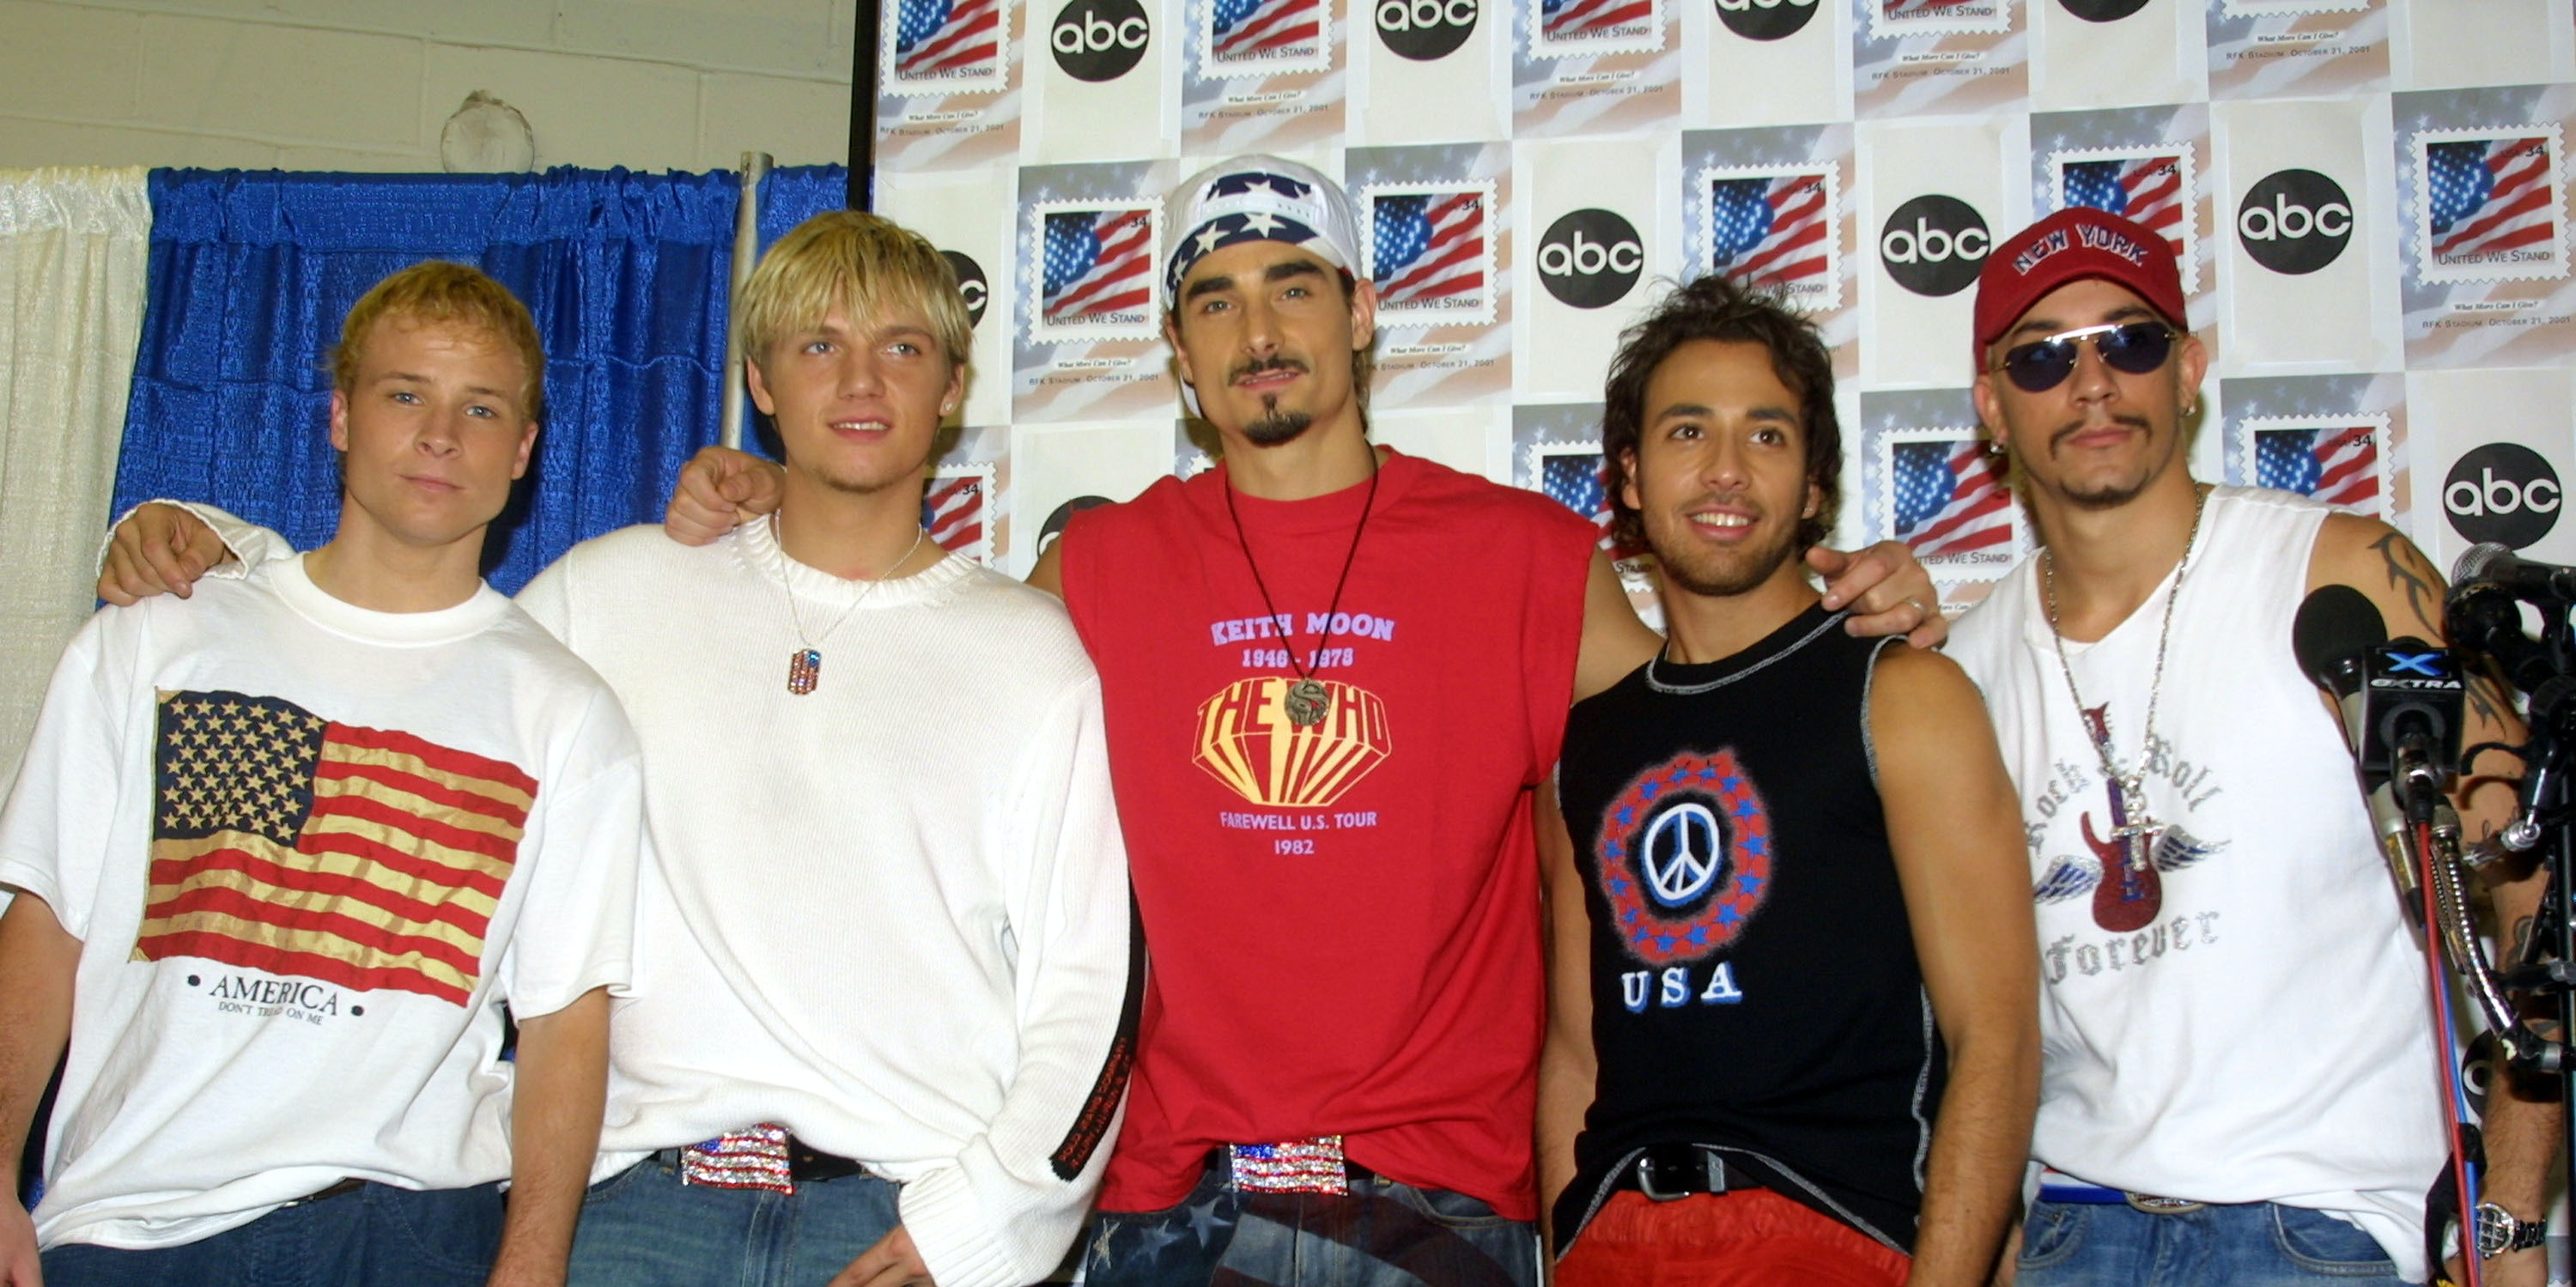 396190 04: Members of music group Backstreet Boys (L-R) Brian Littrell, Nick Carter, Kevin Richardson, A.J. McLean and Howie Dorough attend the 'United We Stand' benefit concert October 21, 2001 in Washington, DC. (Photo by Alex Wong/Getty Images)